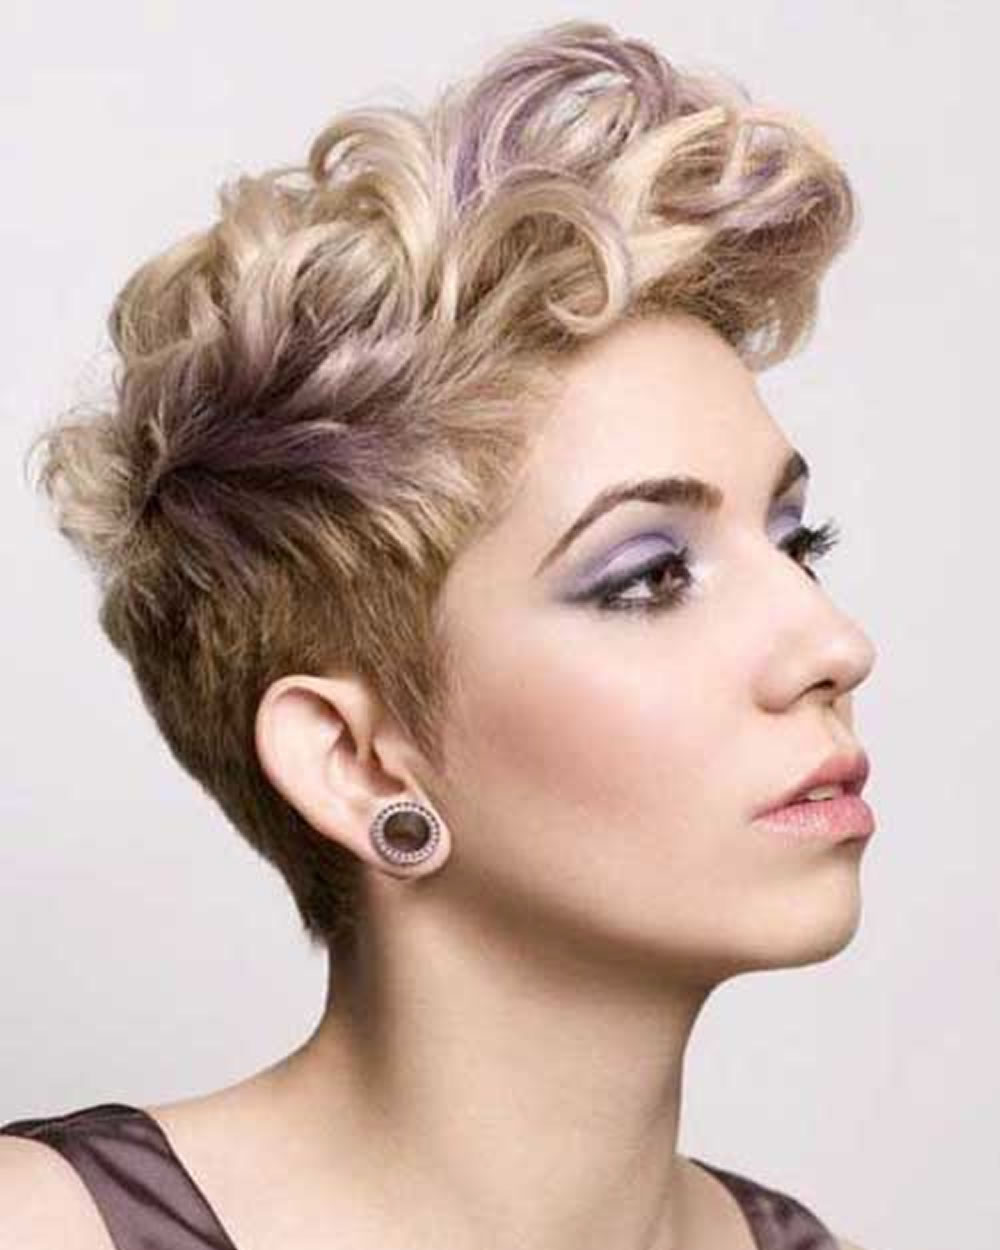 Undercut Hair Design for Women - Undercut Hairstyles 2018